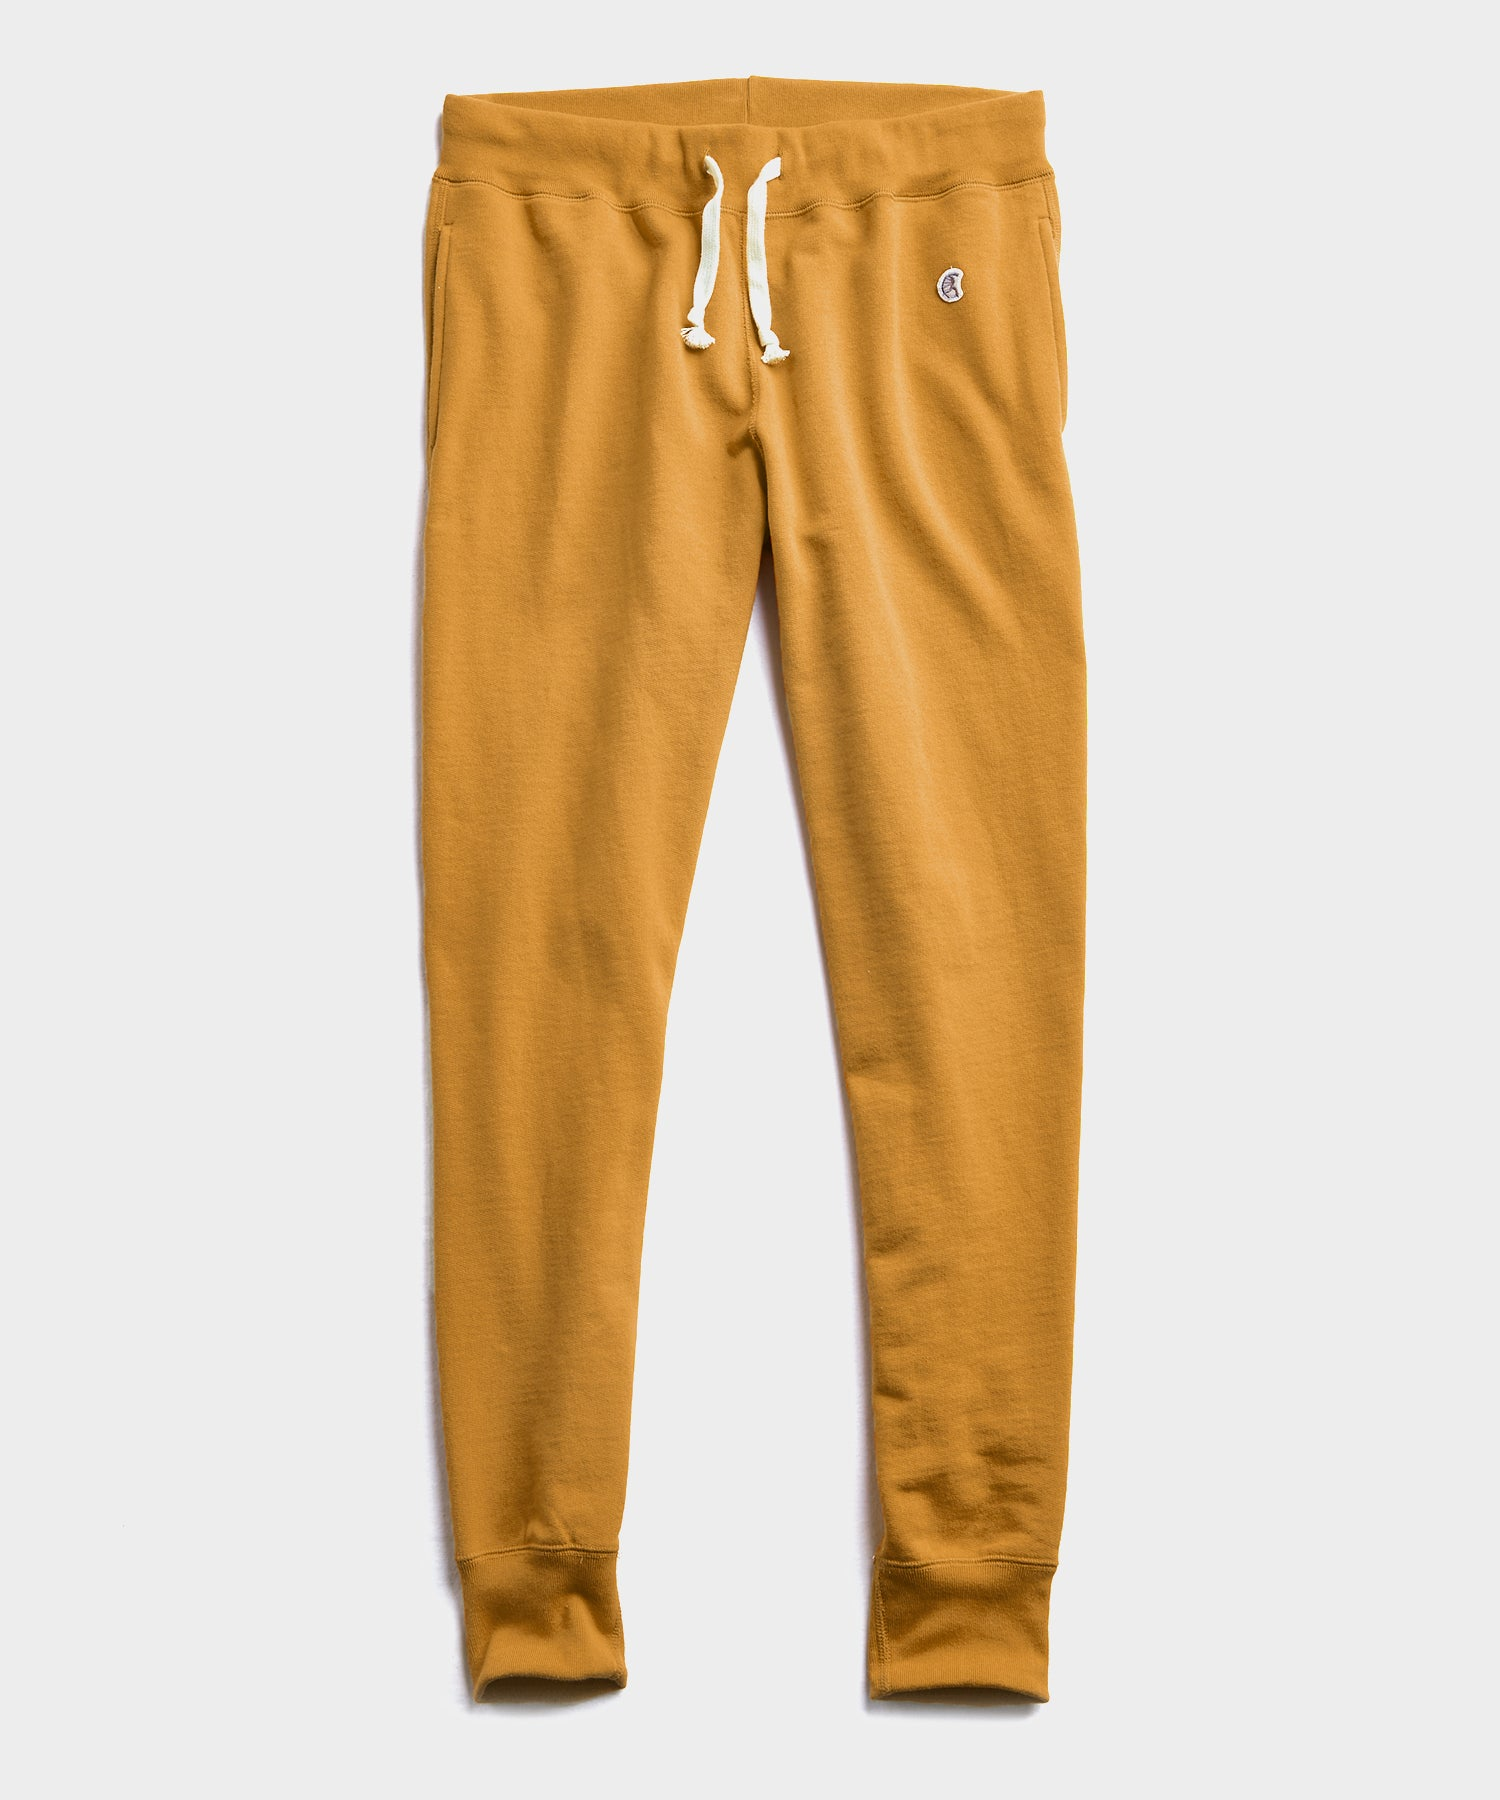 Midweight Slim Jogger Sweatpant in Mustard